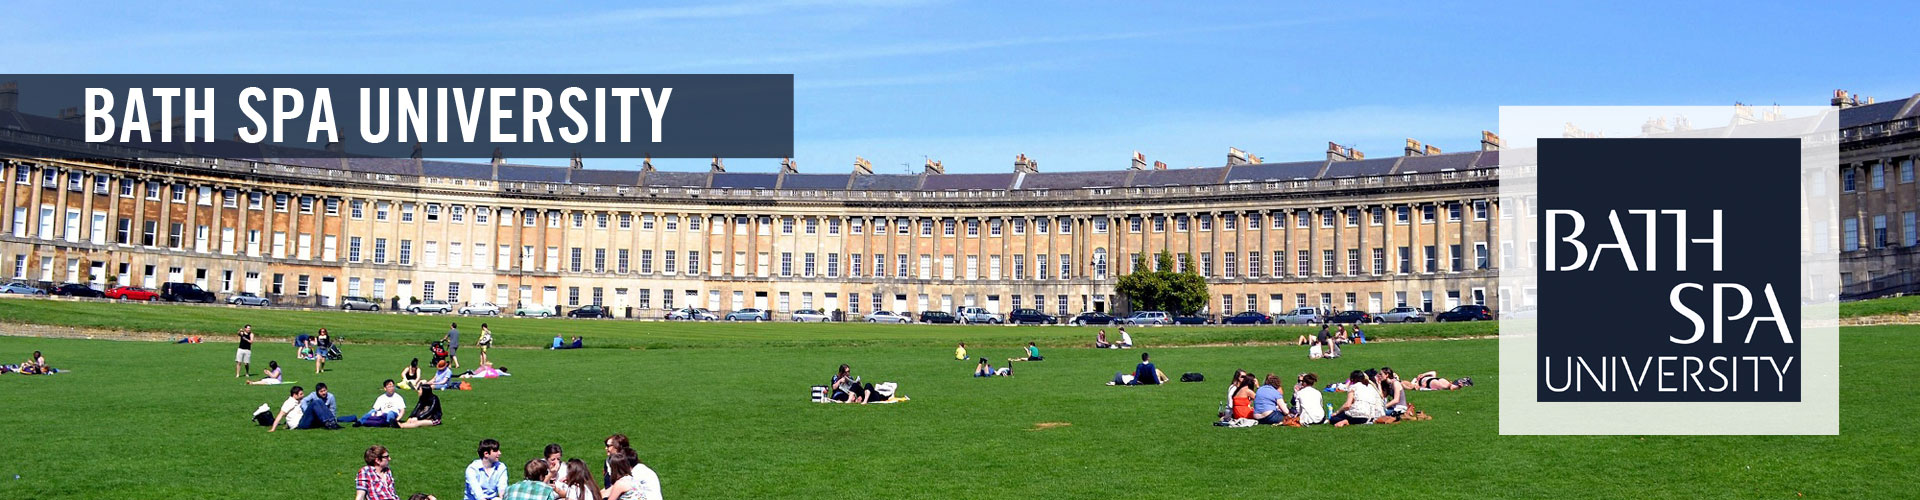 How To Become A Doctor In Usa >> The Counselors Bath Spa University - The Counselors